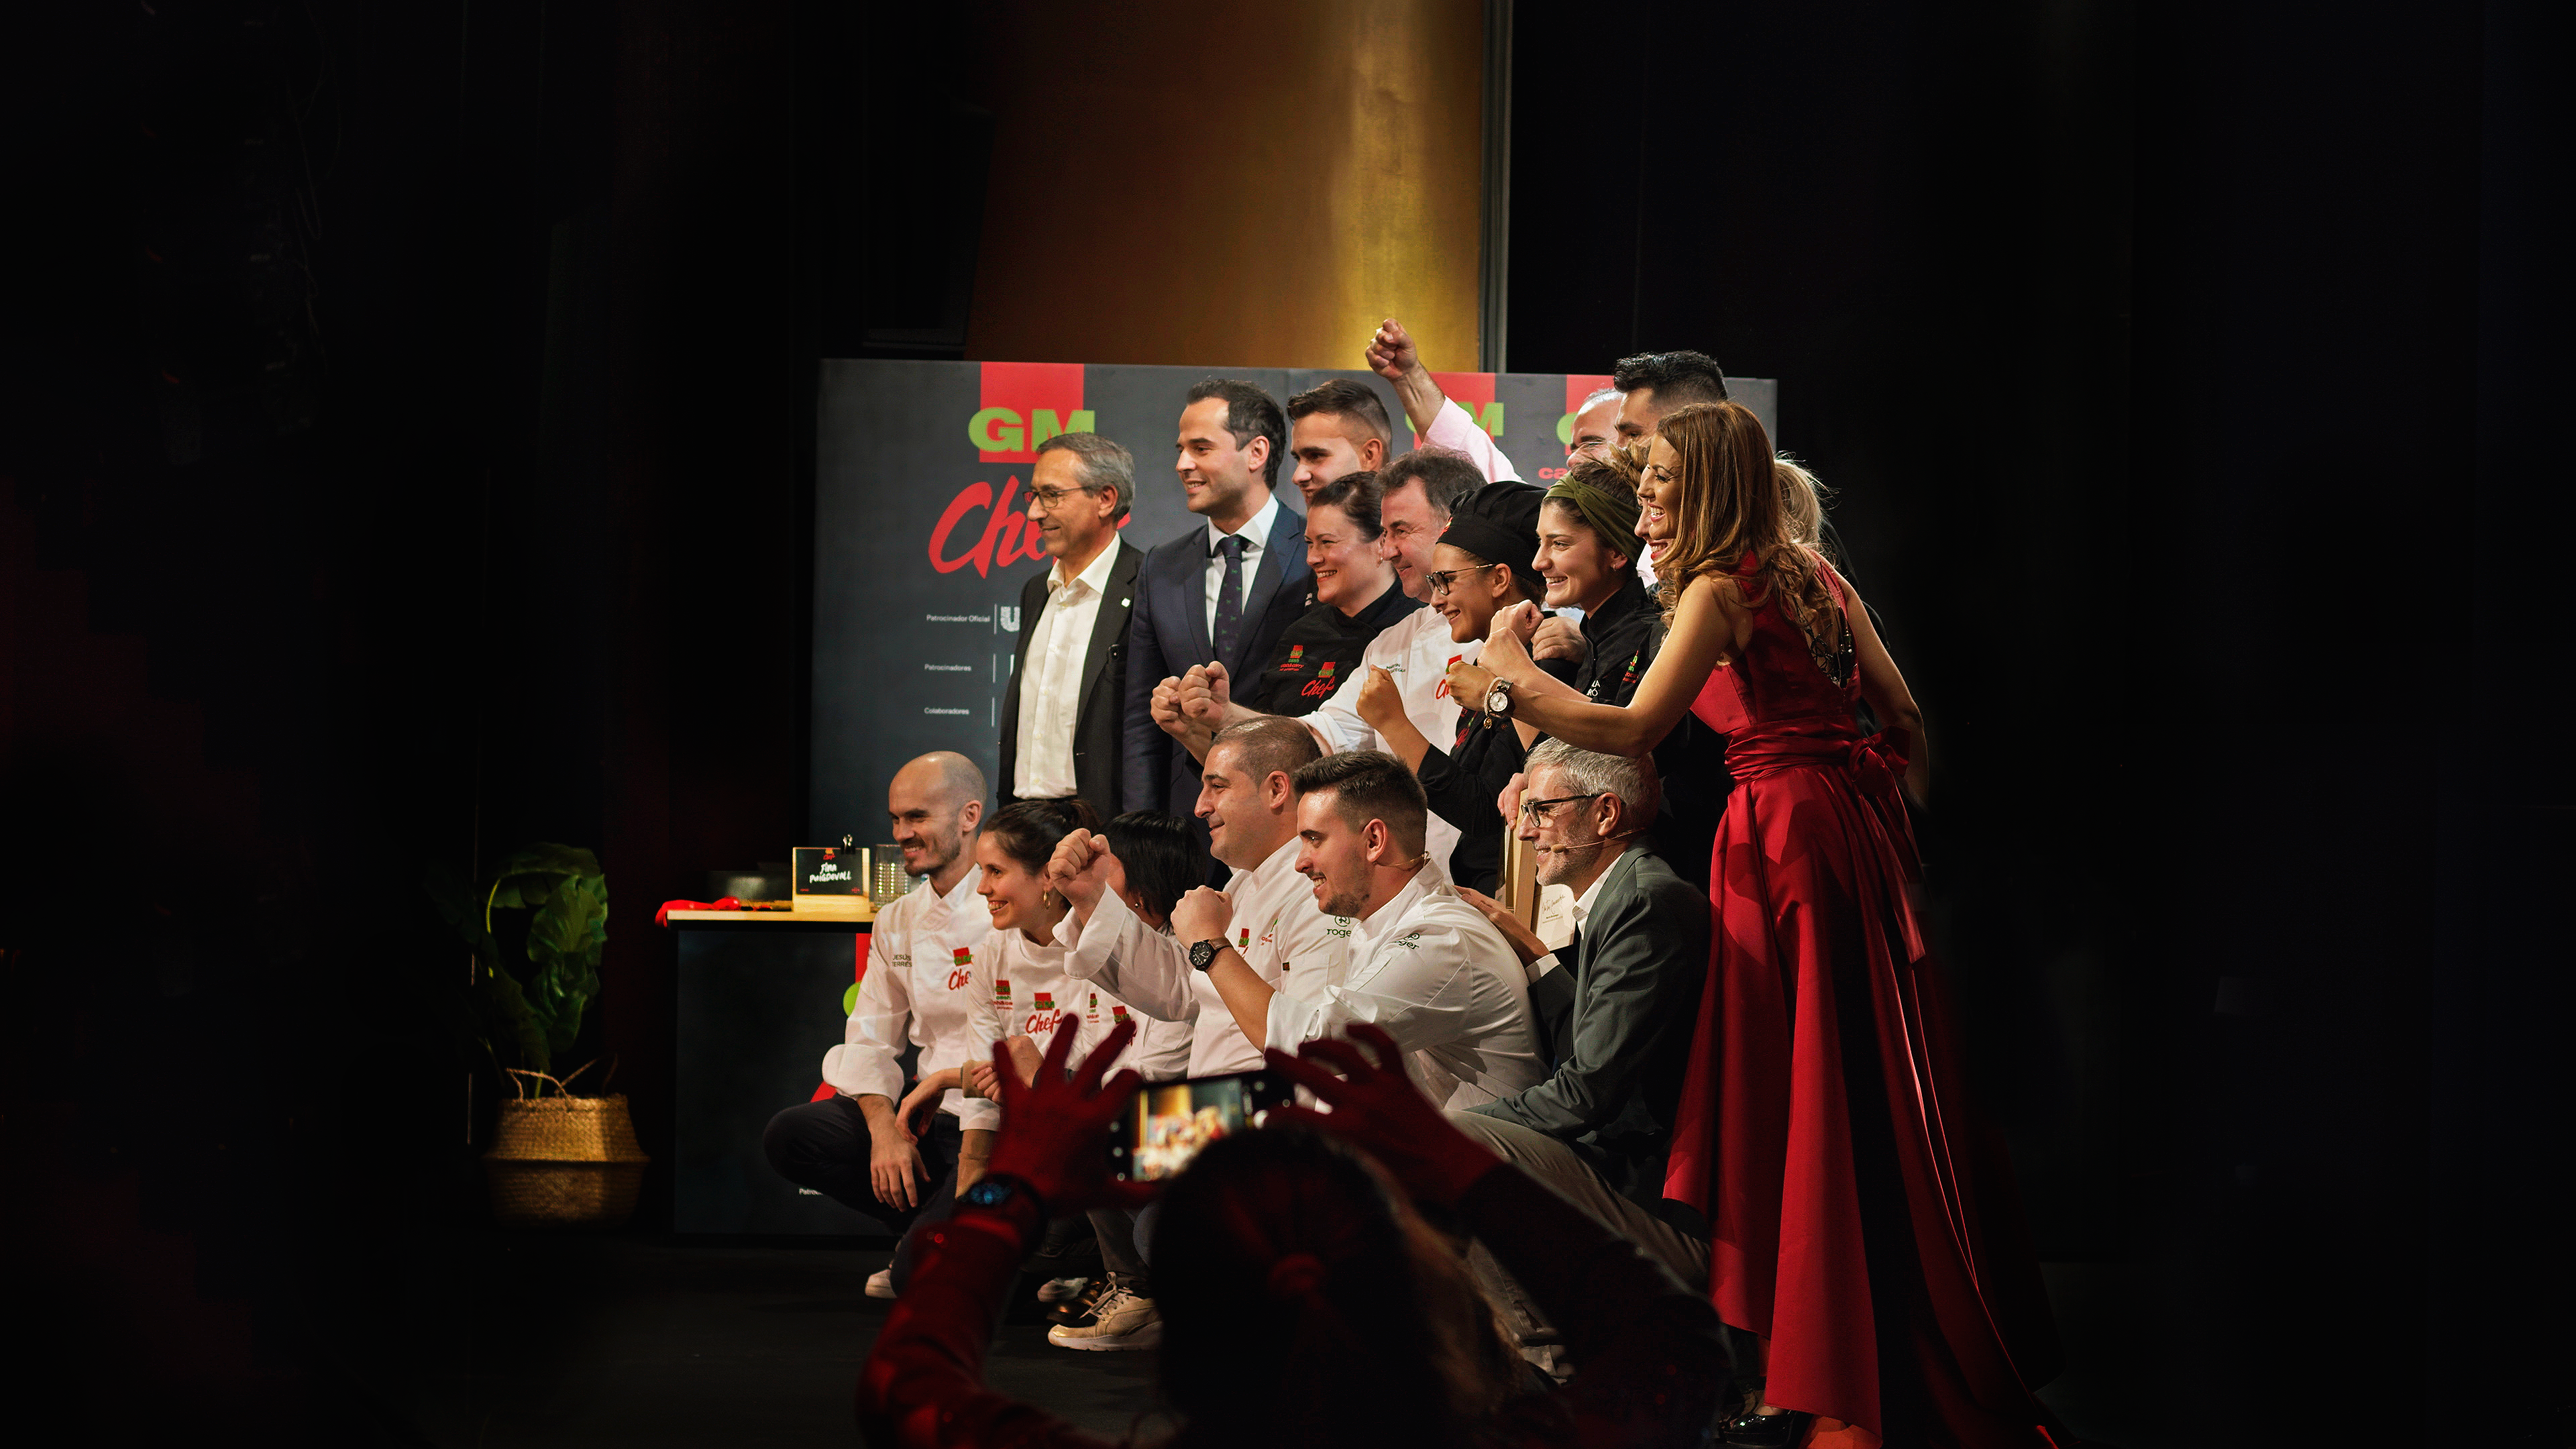 { gm chef 2019 – gran final madrid }